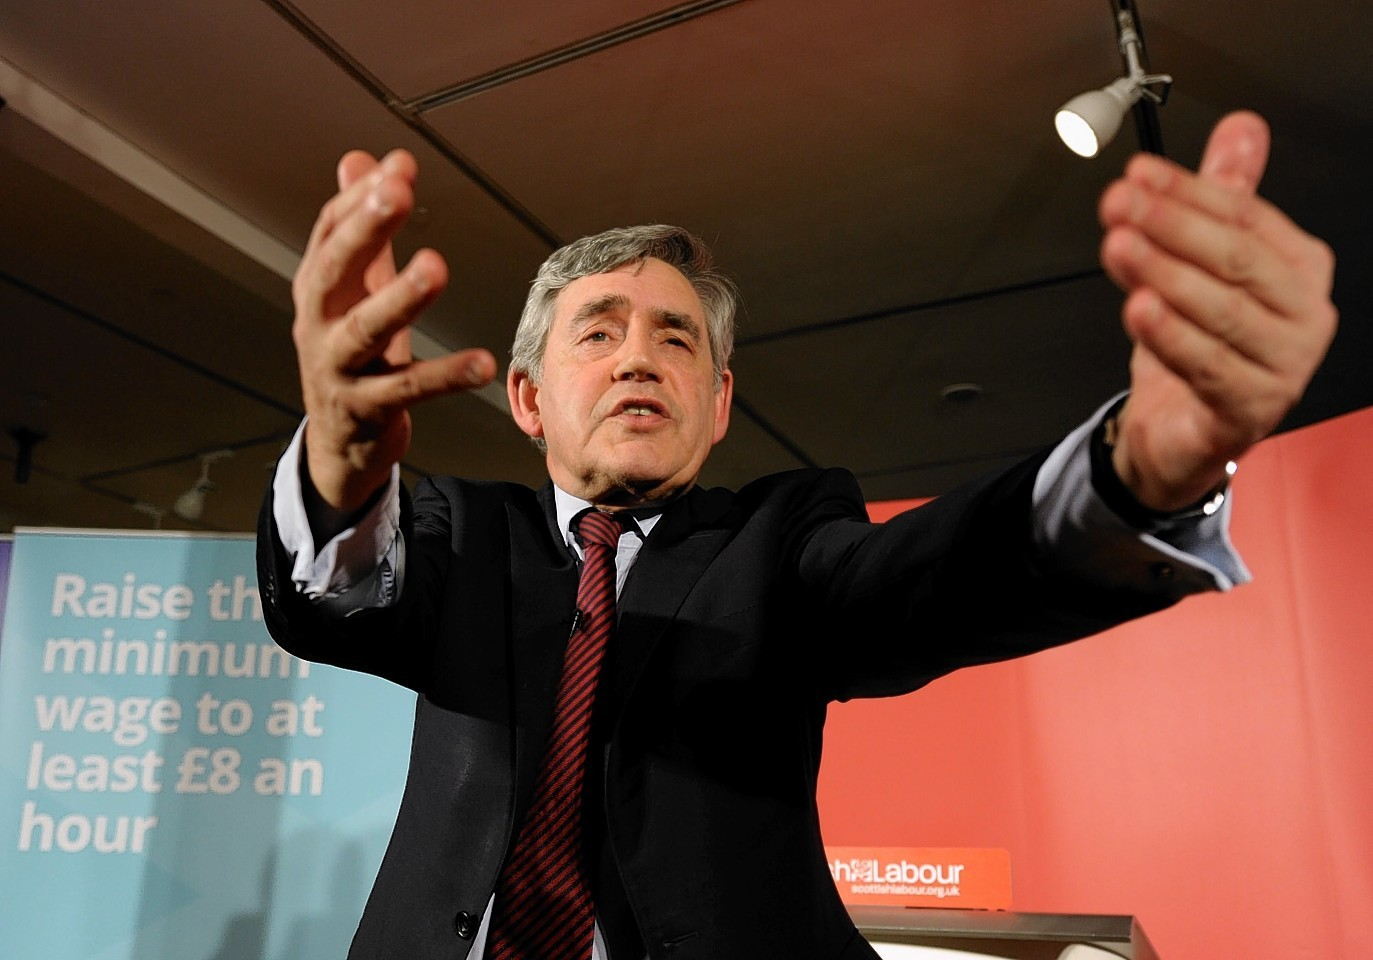 Former Labour leader Gordon Brown at the Lighthouse, Glasgow